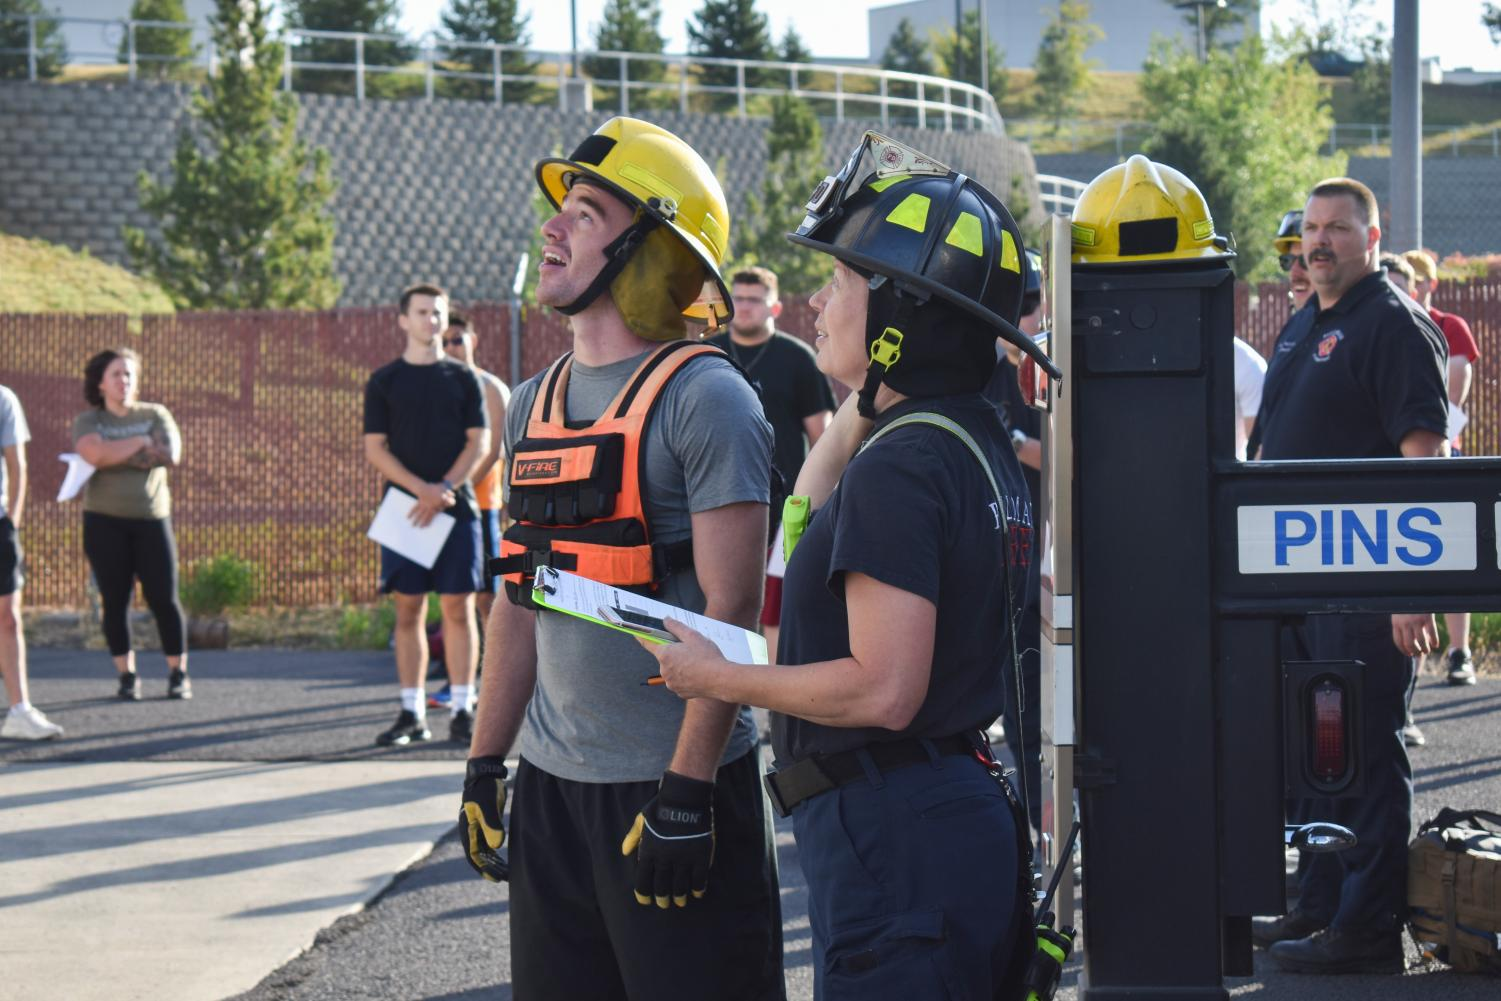 WSU sophomore Nathan Richardson and Pullman Firefighter Angela Teal look at the firefighter training tower while other participants wait for their turn at the facility Saturday morning.